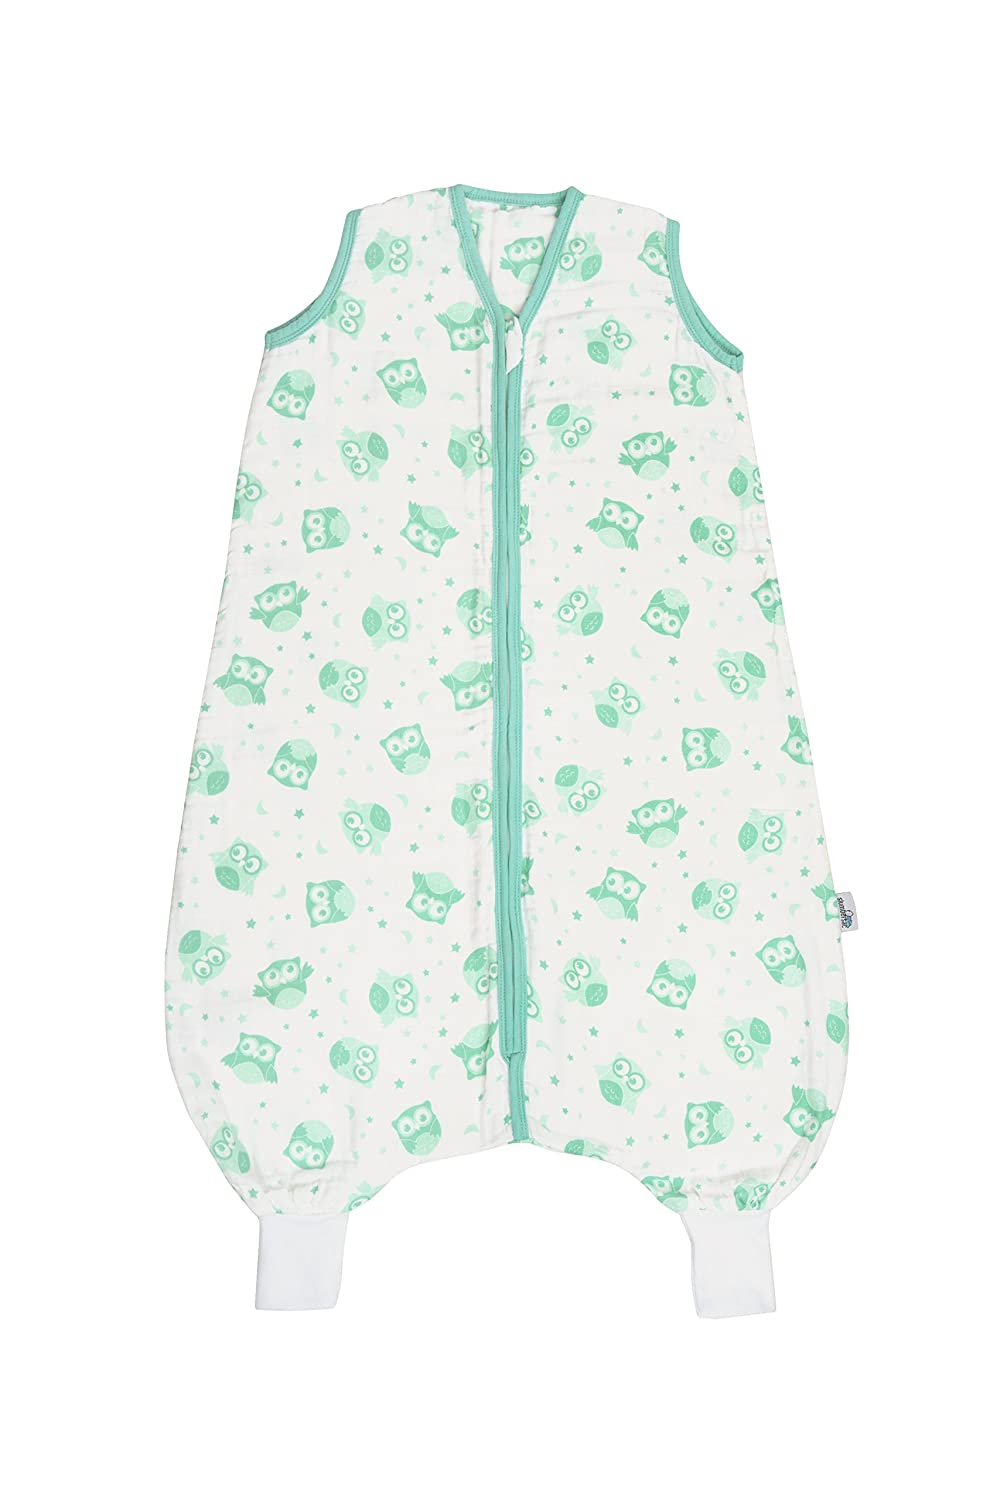 Slumbersac Muslin Sleeping Bag with Feet approx. 0.5 Tog - Mint Owls- 18-24 Months/90cm